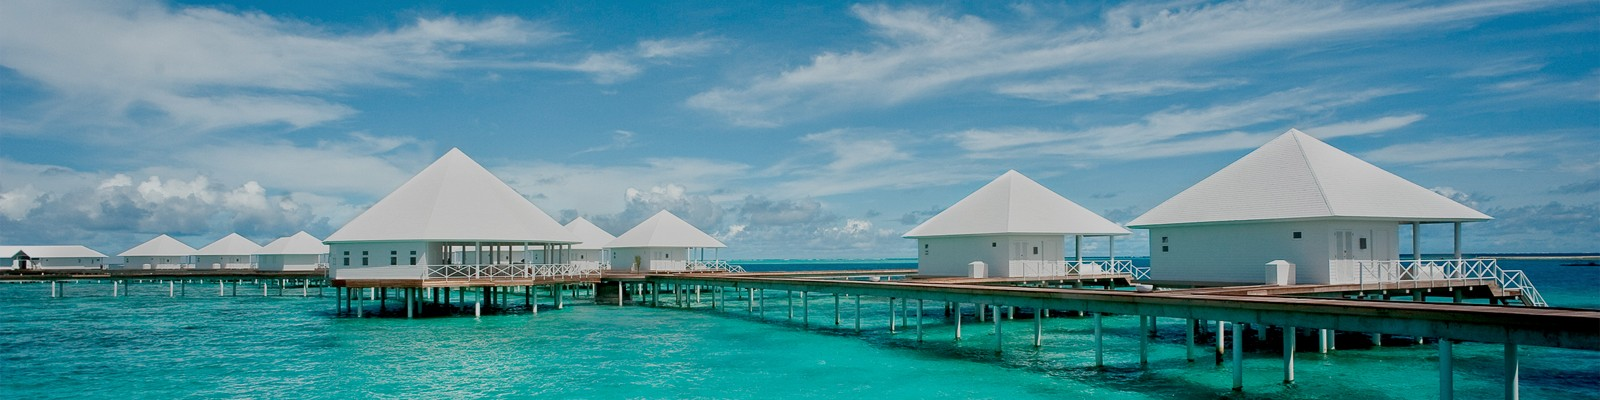 top 10 honeymoon resorts - honeymoon packages